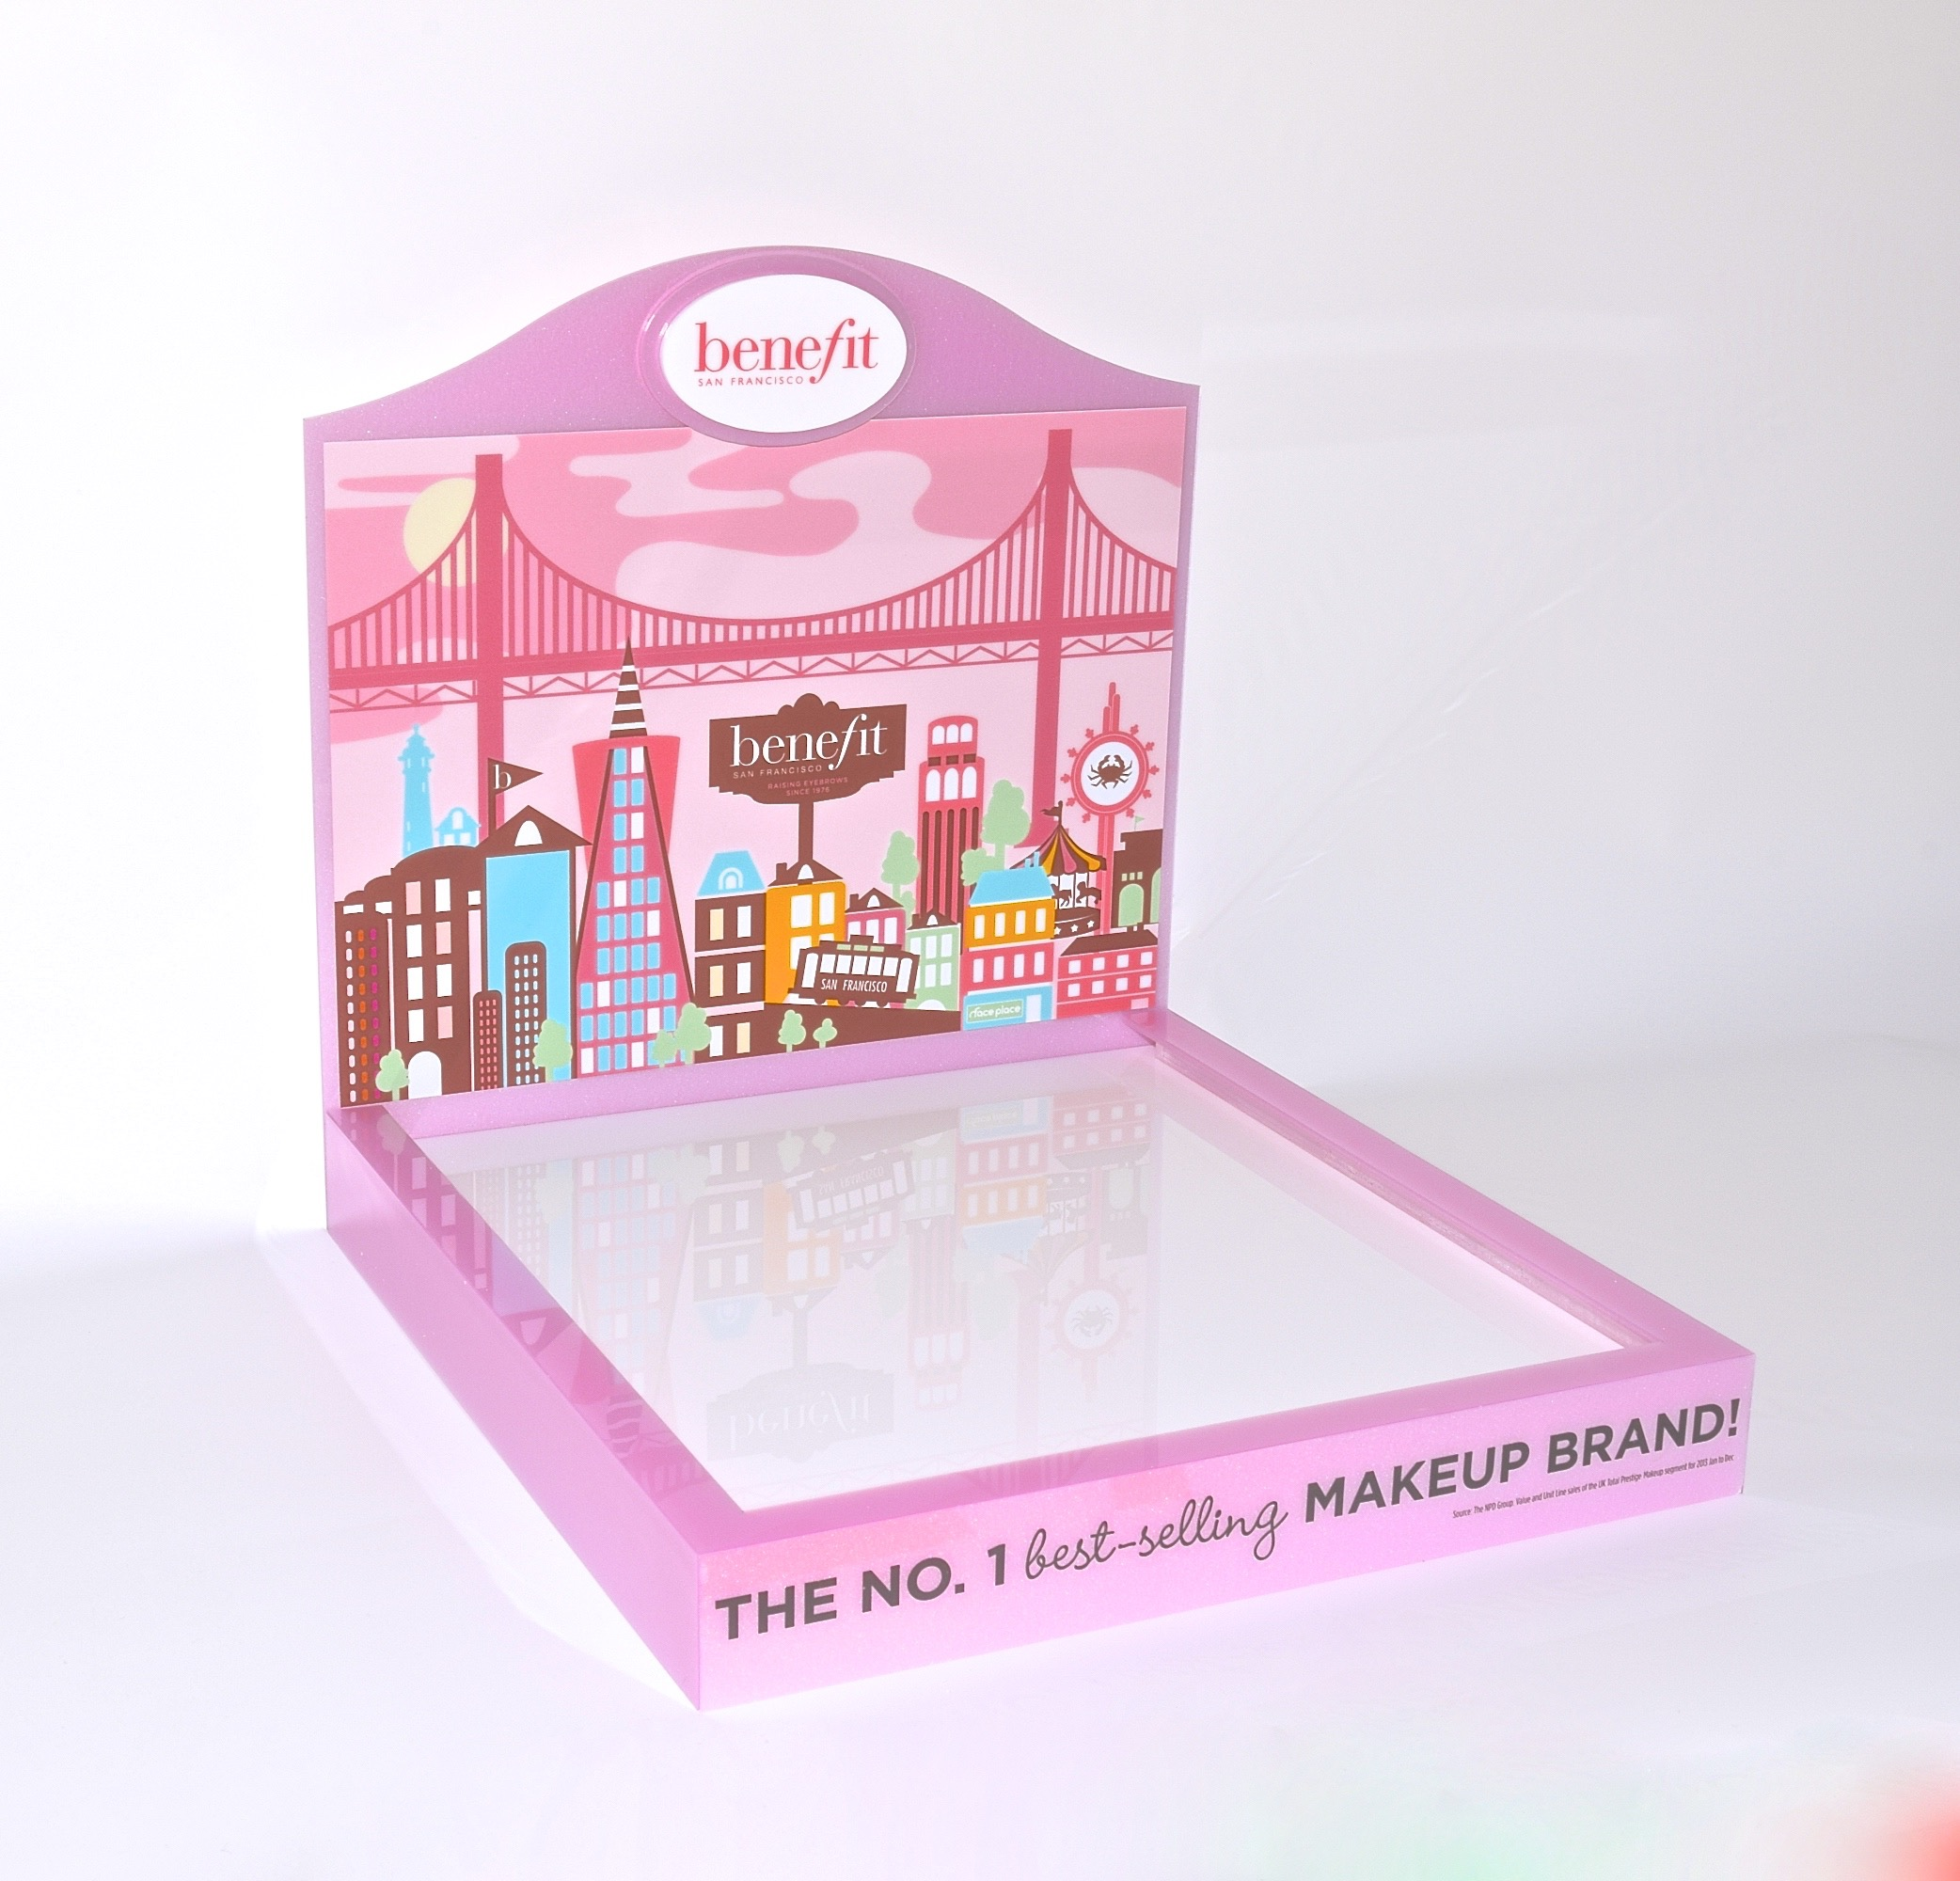 Benefit Counter Tray